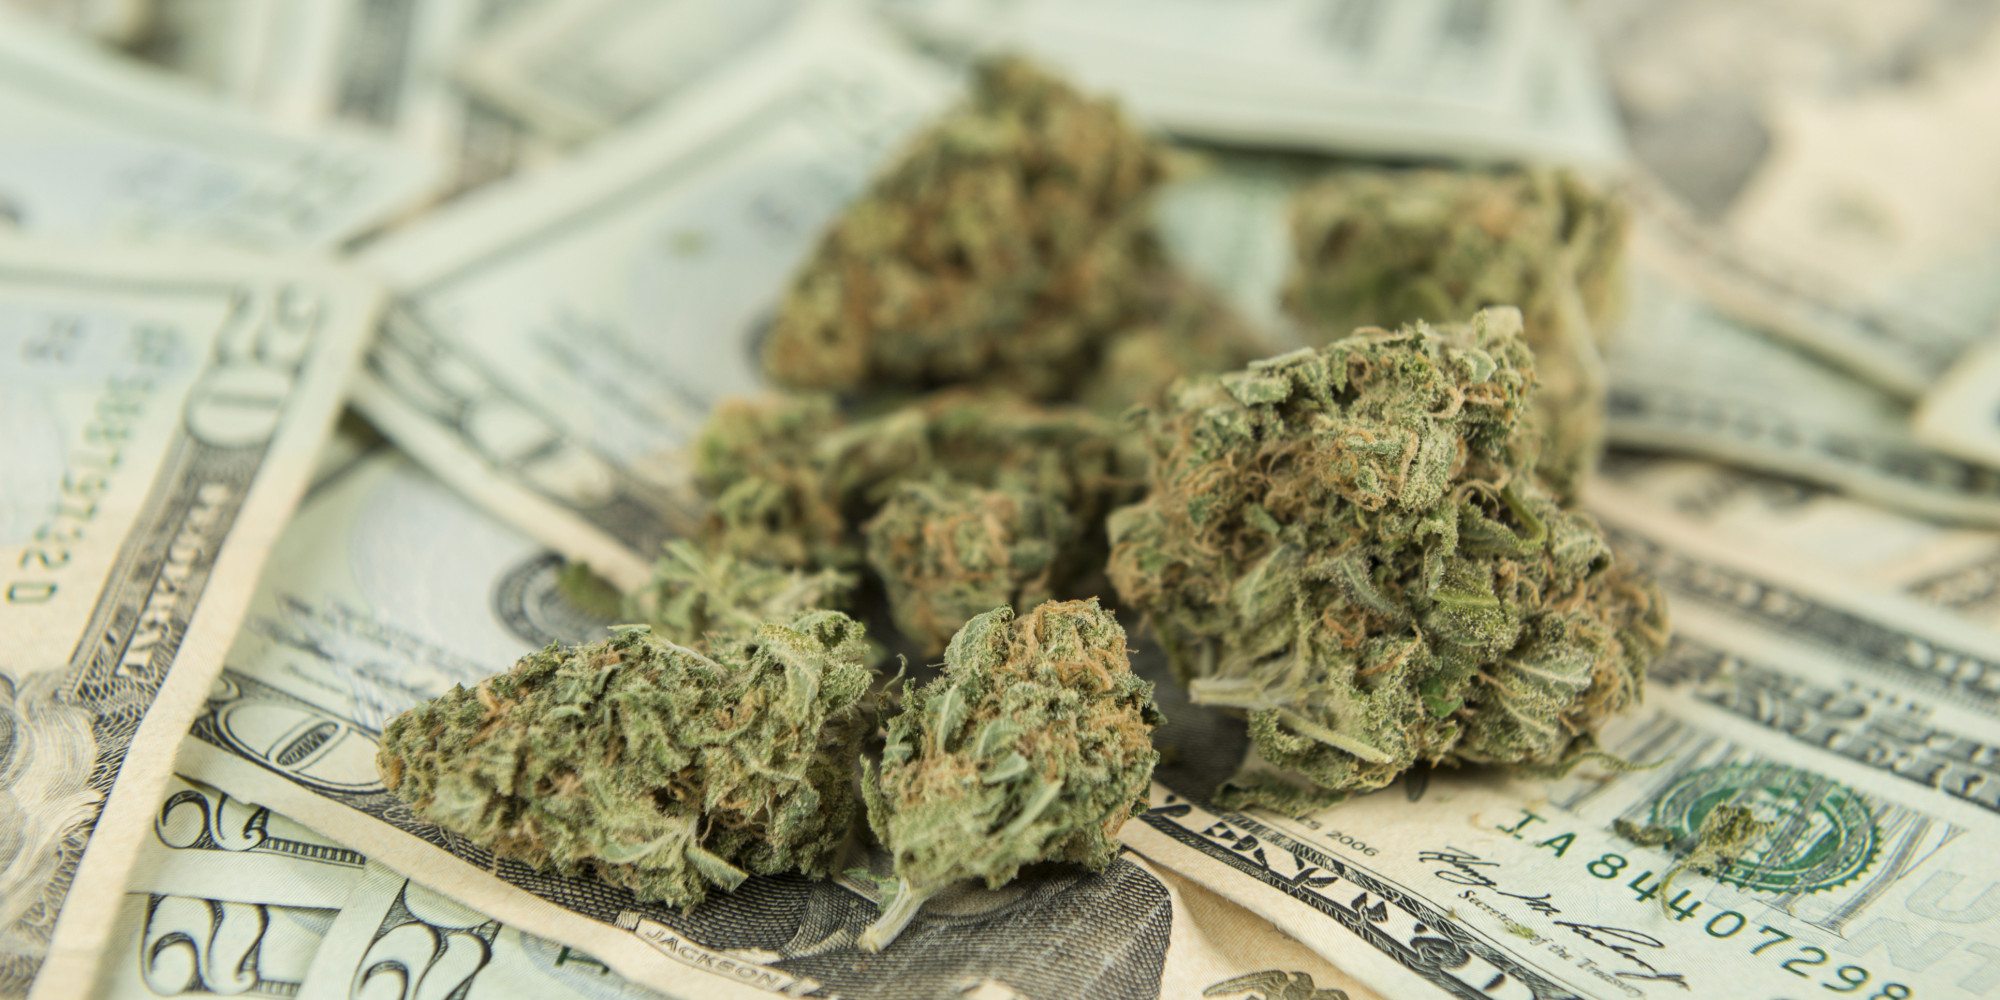 Report: If West Virginia Legalized Cannabis, State Would Get Tens of Millions in Annual Taxes